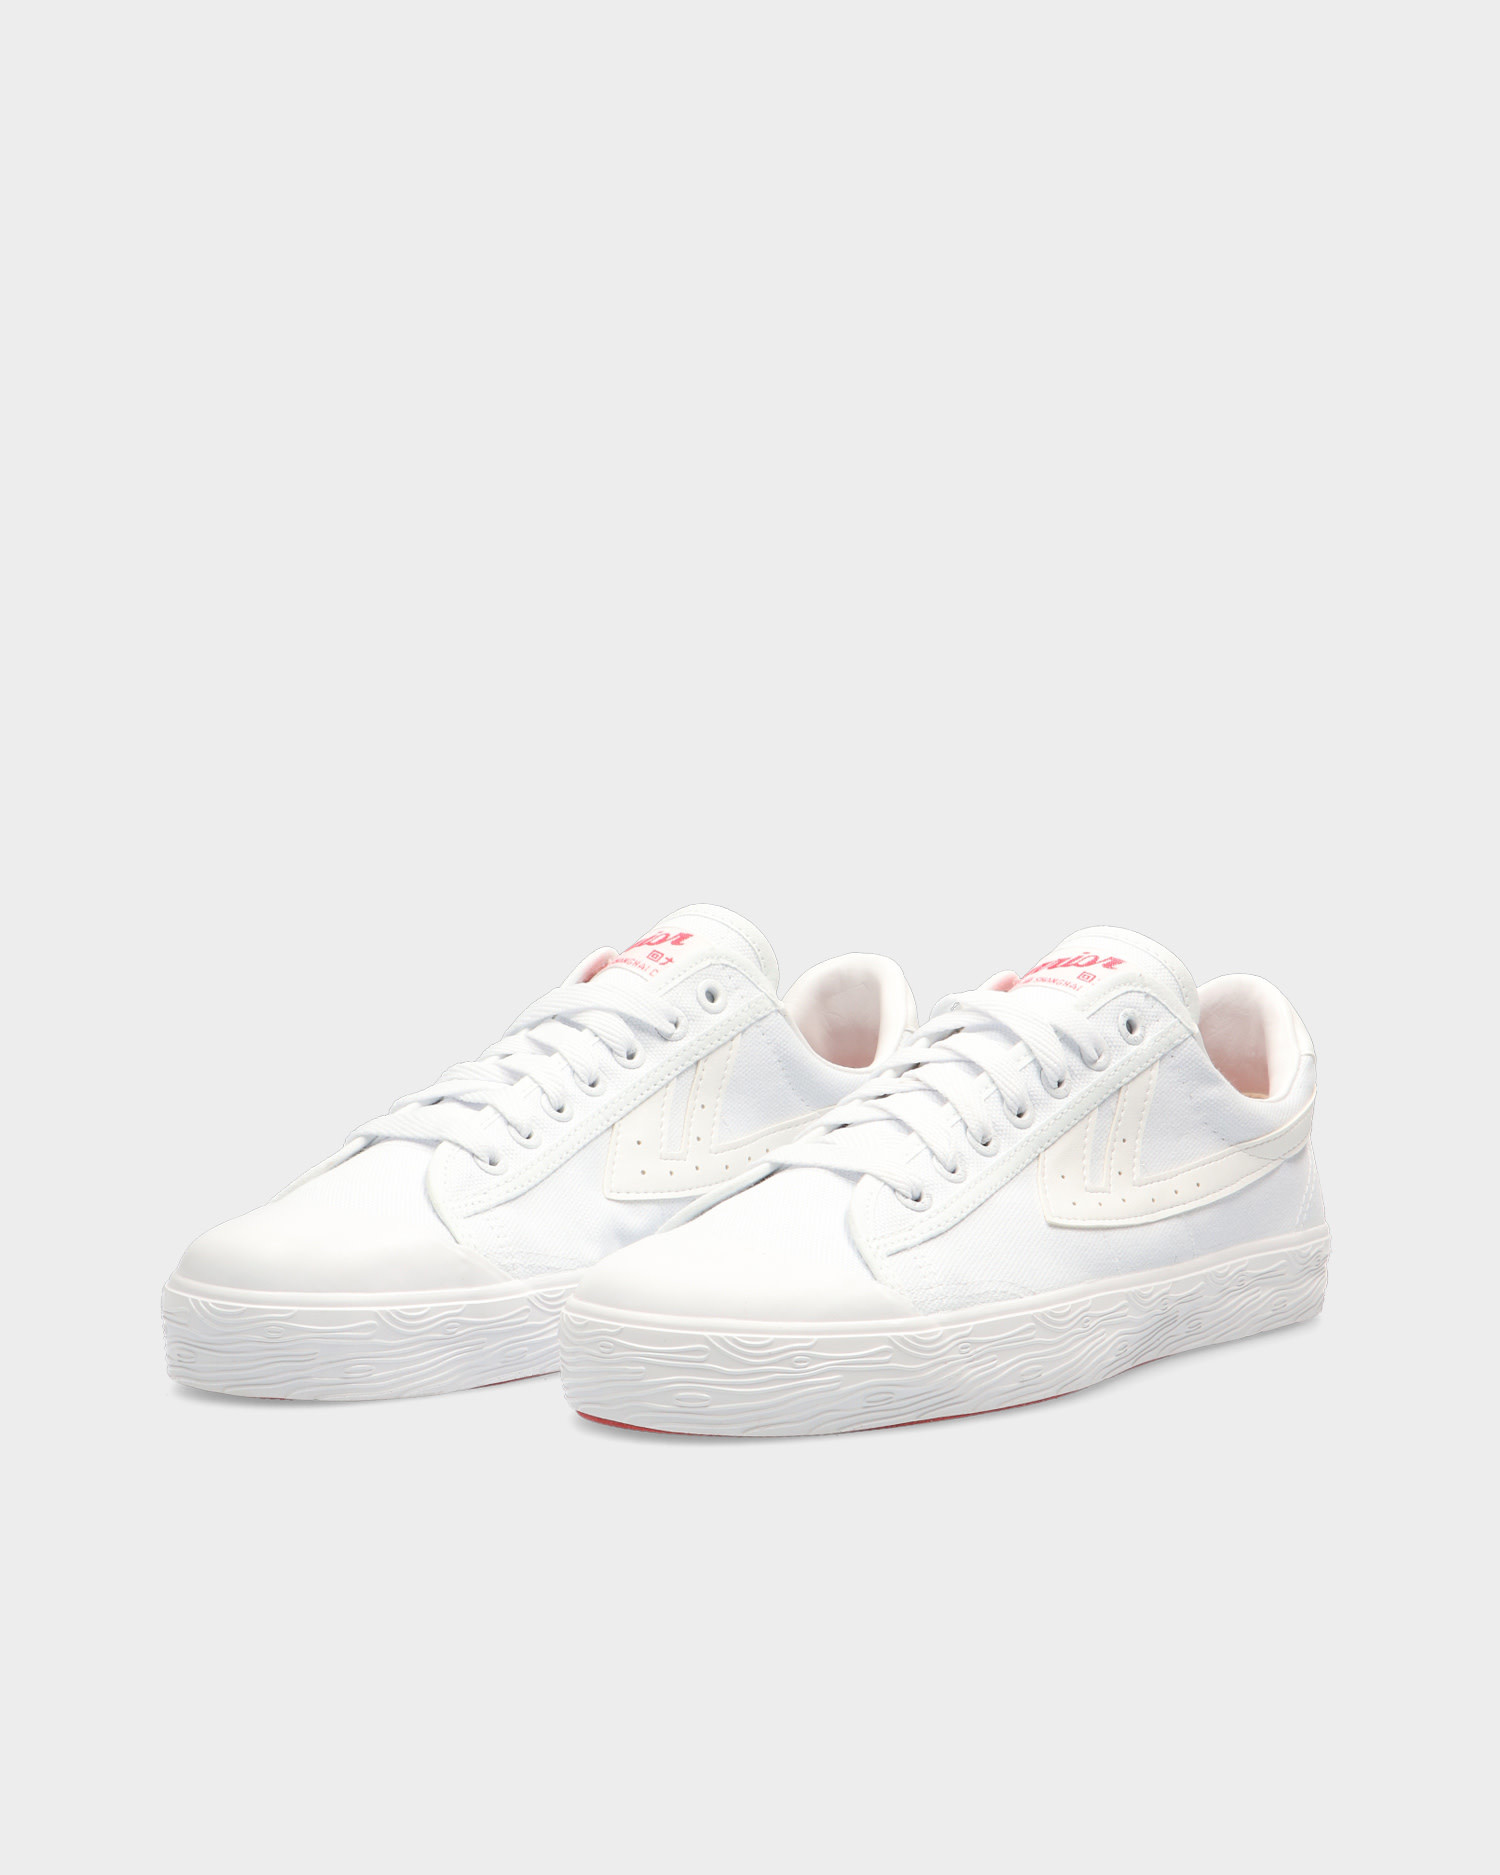 Warrior WB-1 White/White